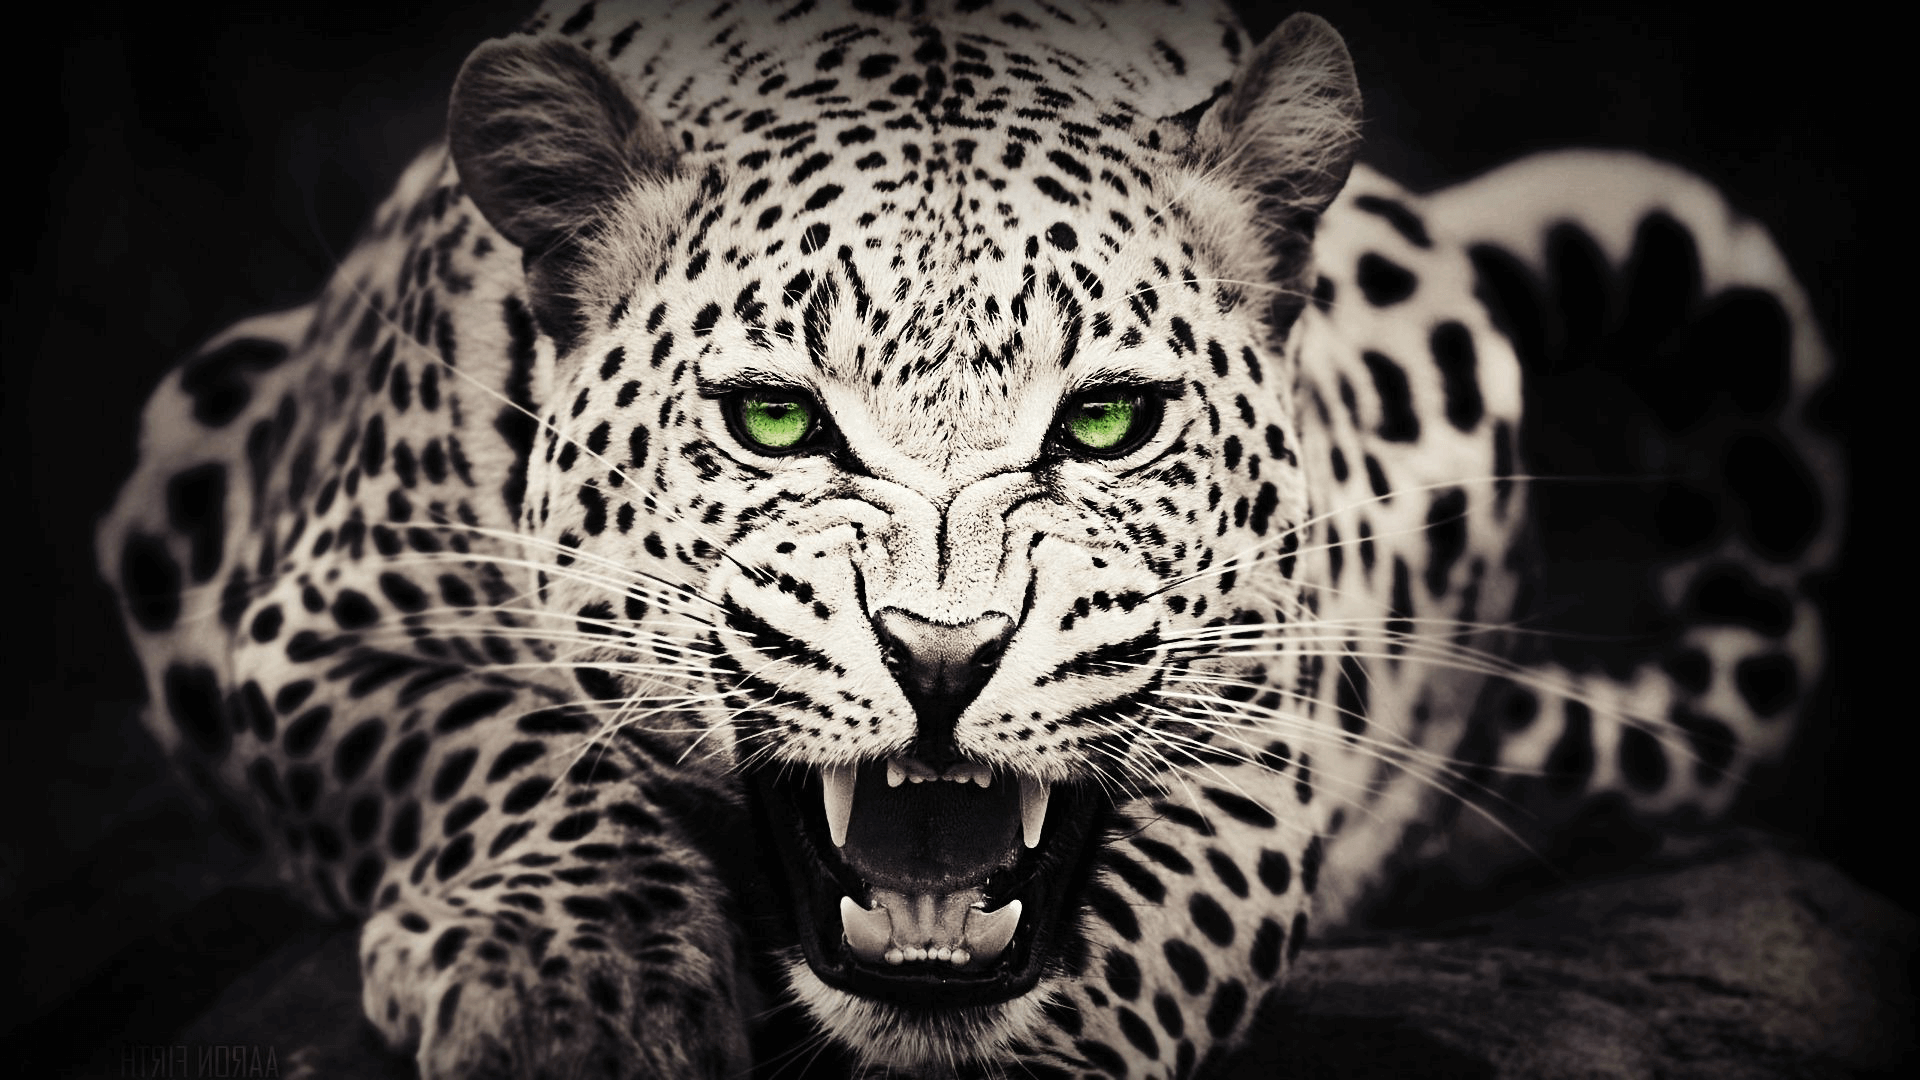 20 HD Tiger & Leopard Wallpapers